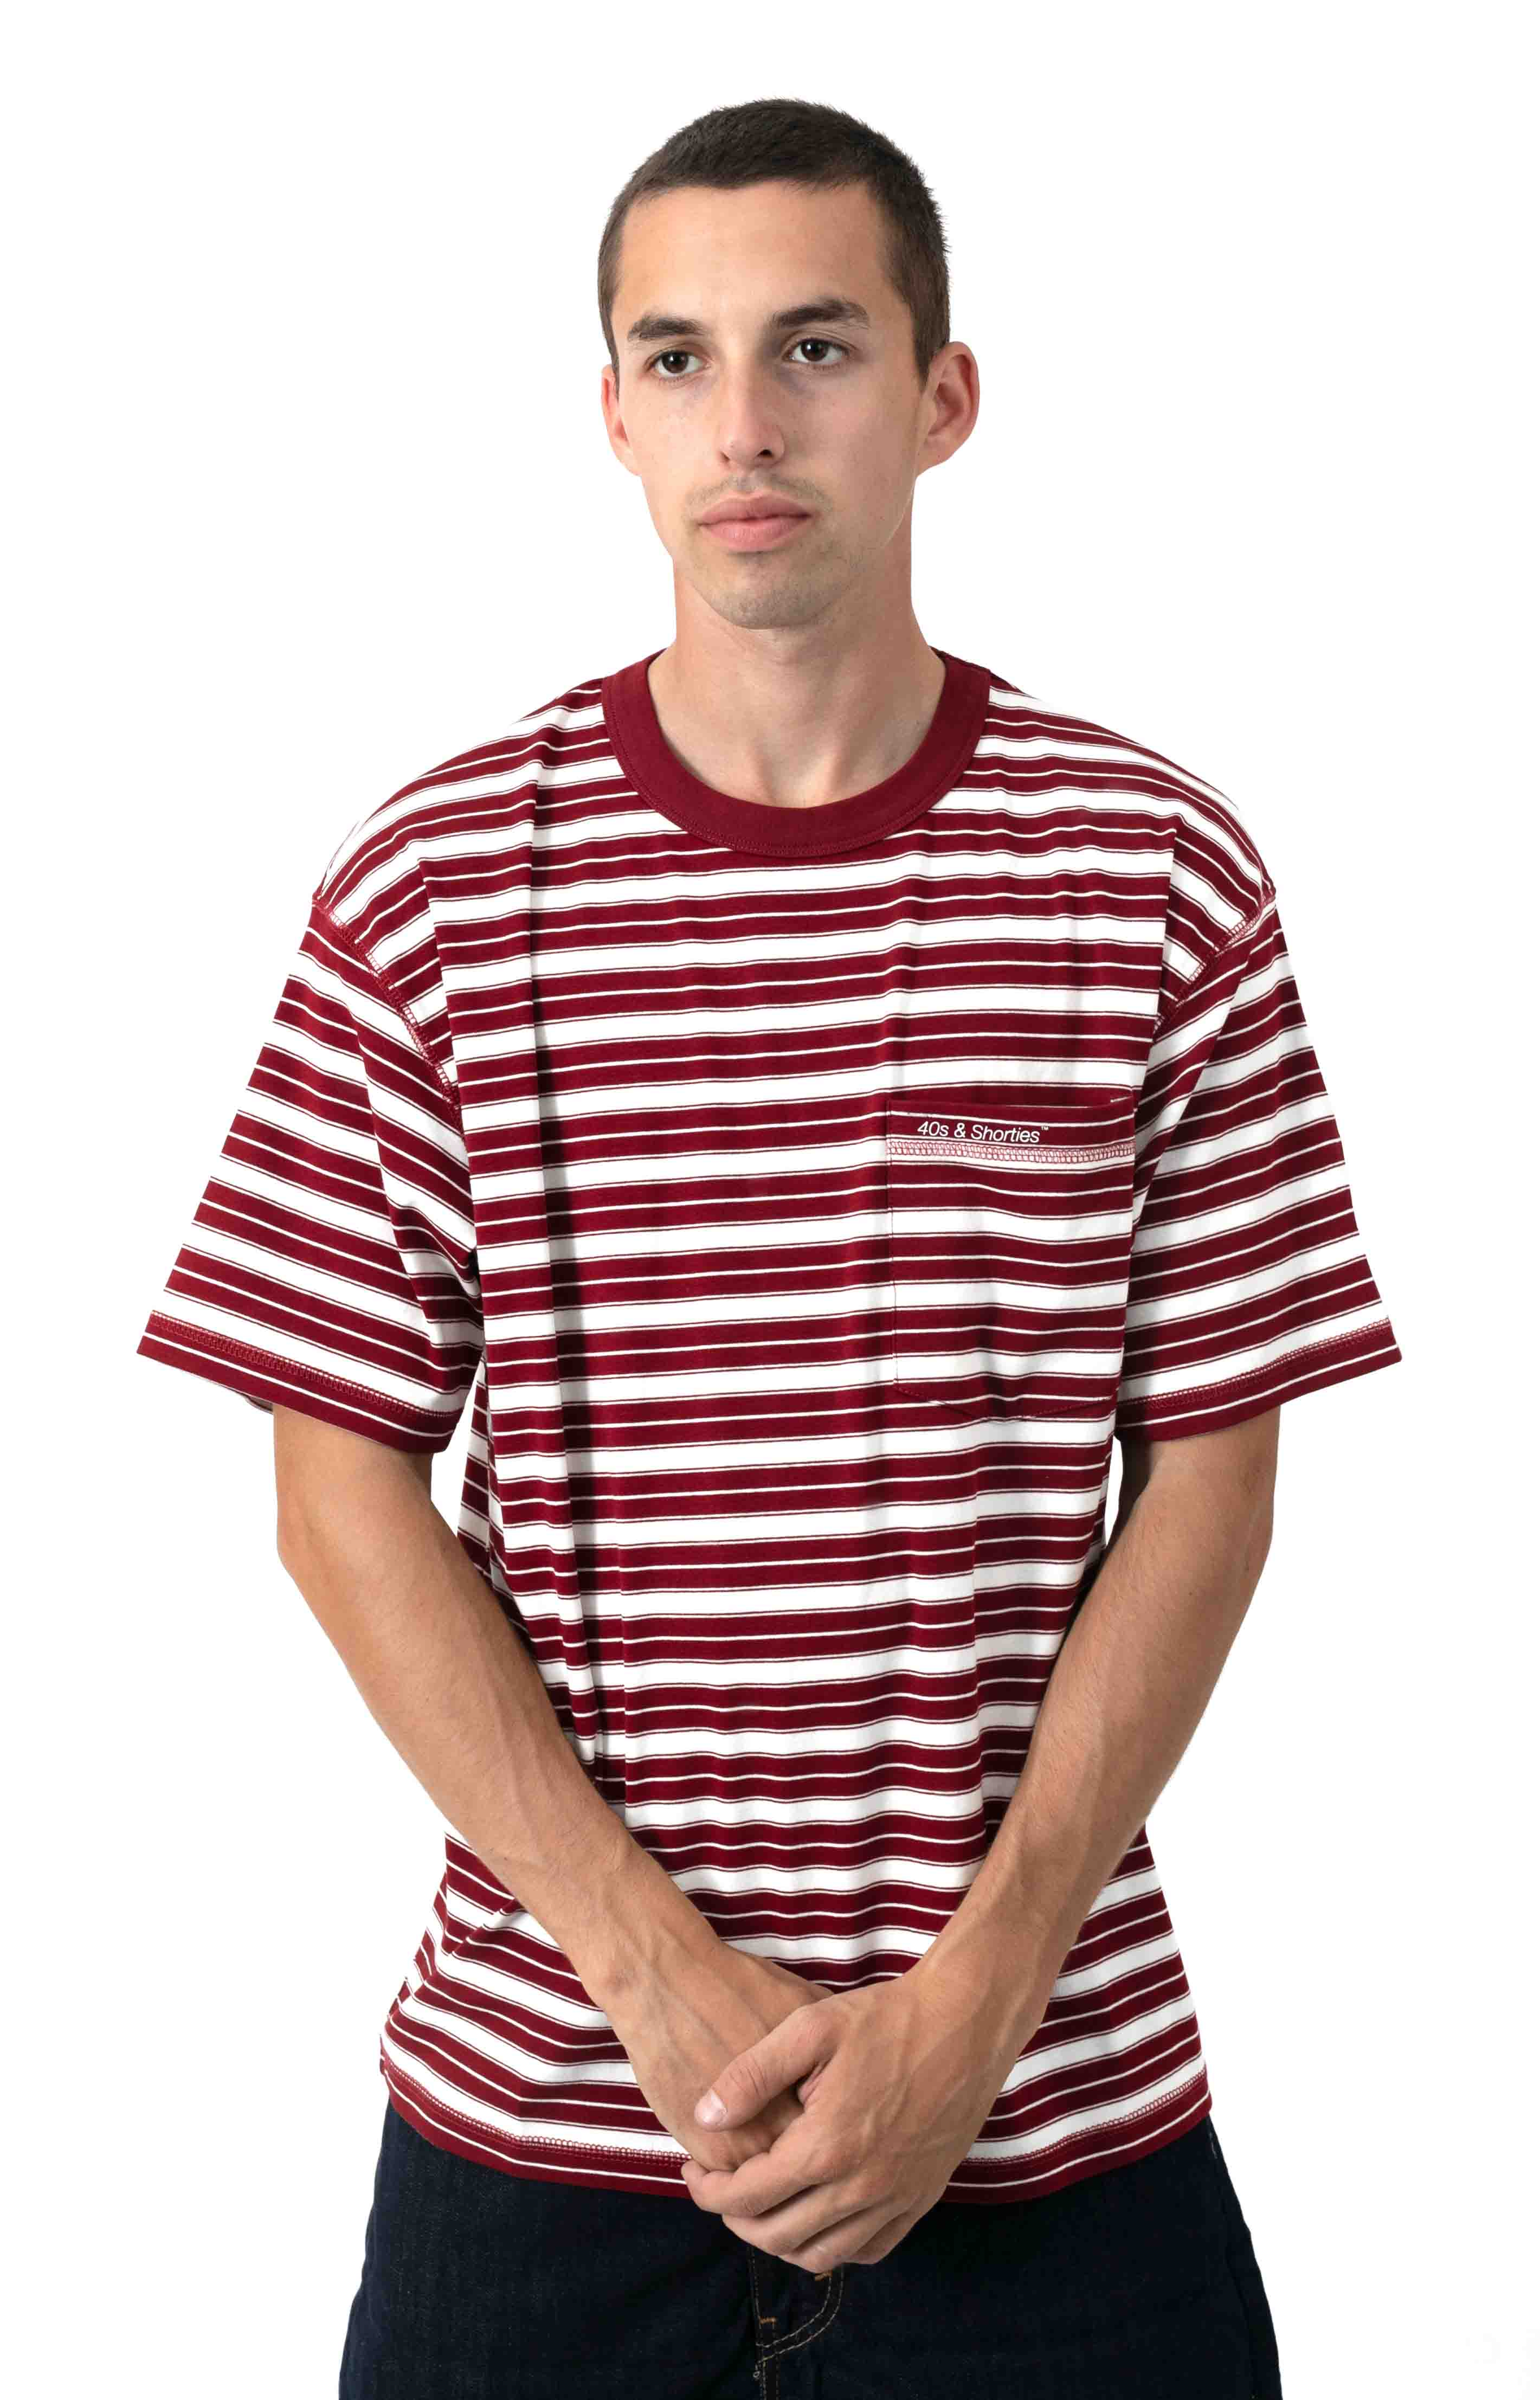 O-Dog T-Shirt - Burgundy